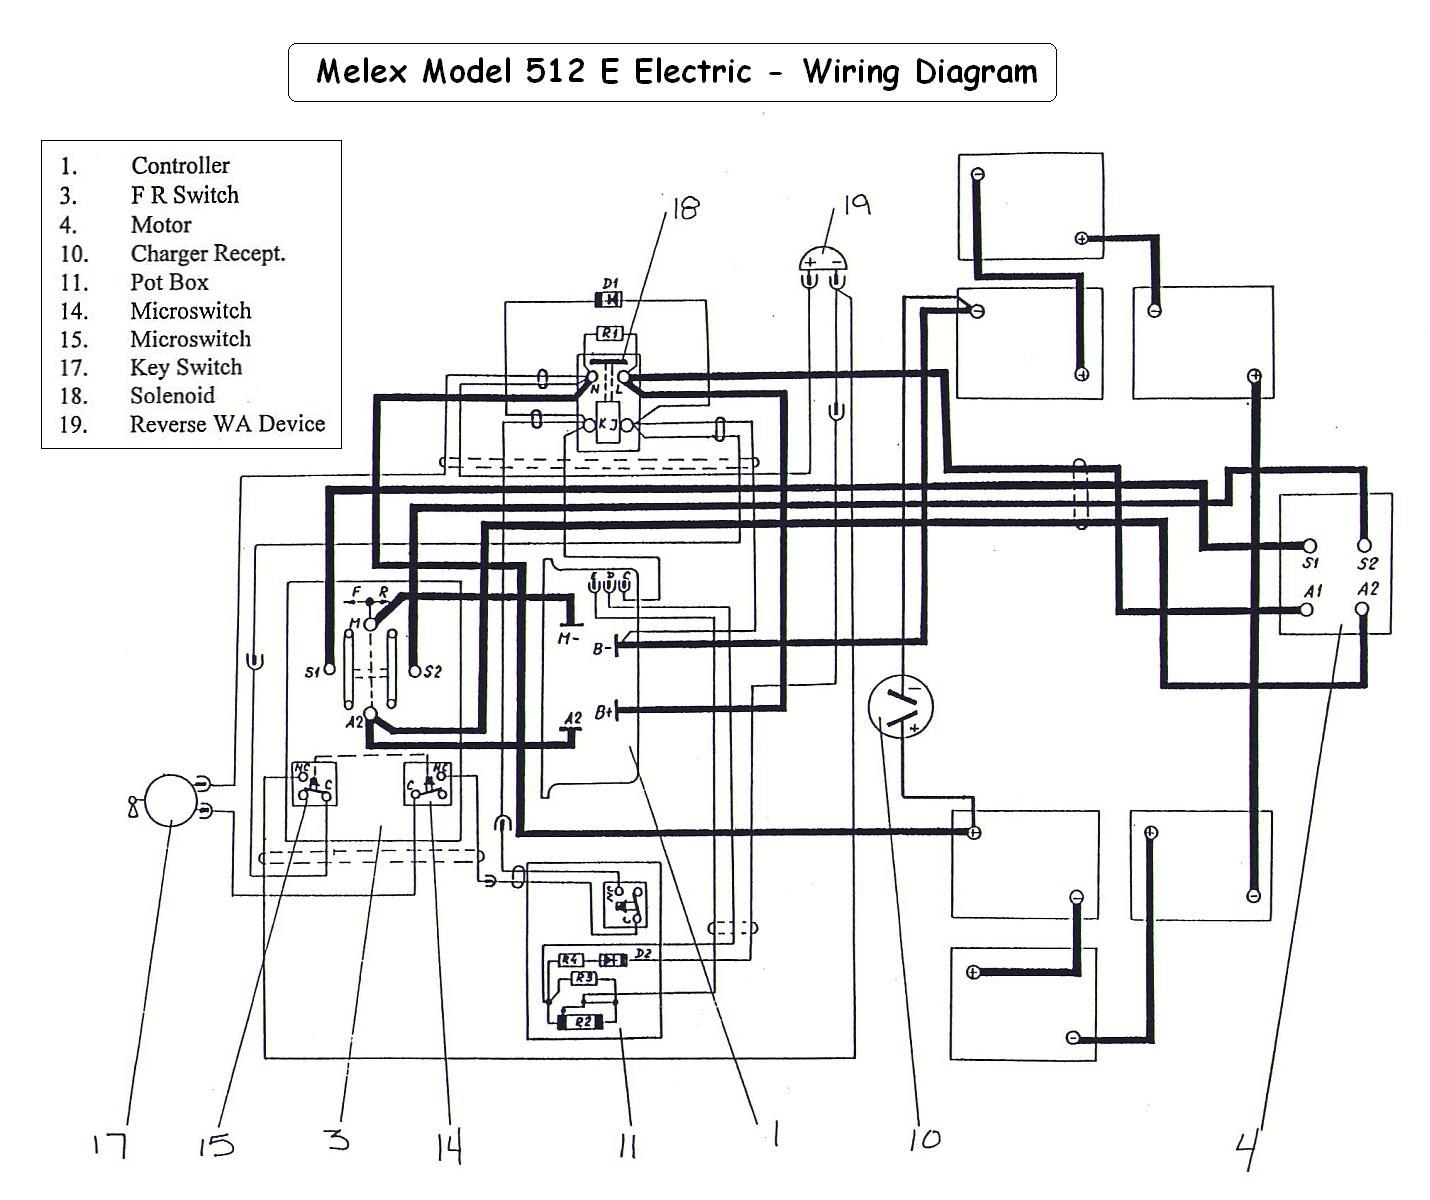 36 Volt Taylor Dunn Wiring Diagram likewise Ezgo Golf Cart Charger Wiring Diagram Chart together with Ezgo Golf Cart Wiring Diagram Wiring Diagram For Ez Go 36volt 20 besides Official 2000 Club Carturf Turf 1 2 6 Plus Carryall 6 Gas Electric Service Manual 102067502 furthermore 1999 Club Car Wiring Diagram. on ezgo rxv wiring diagram